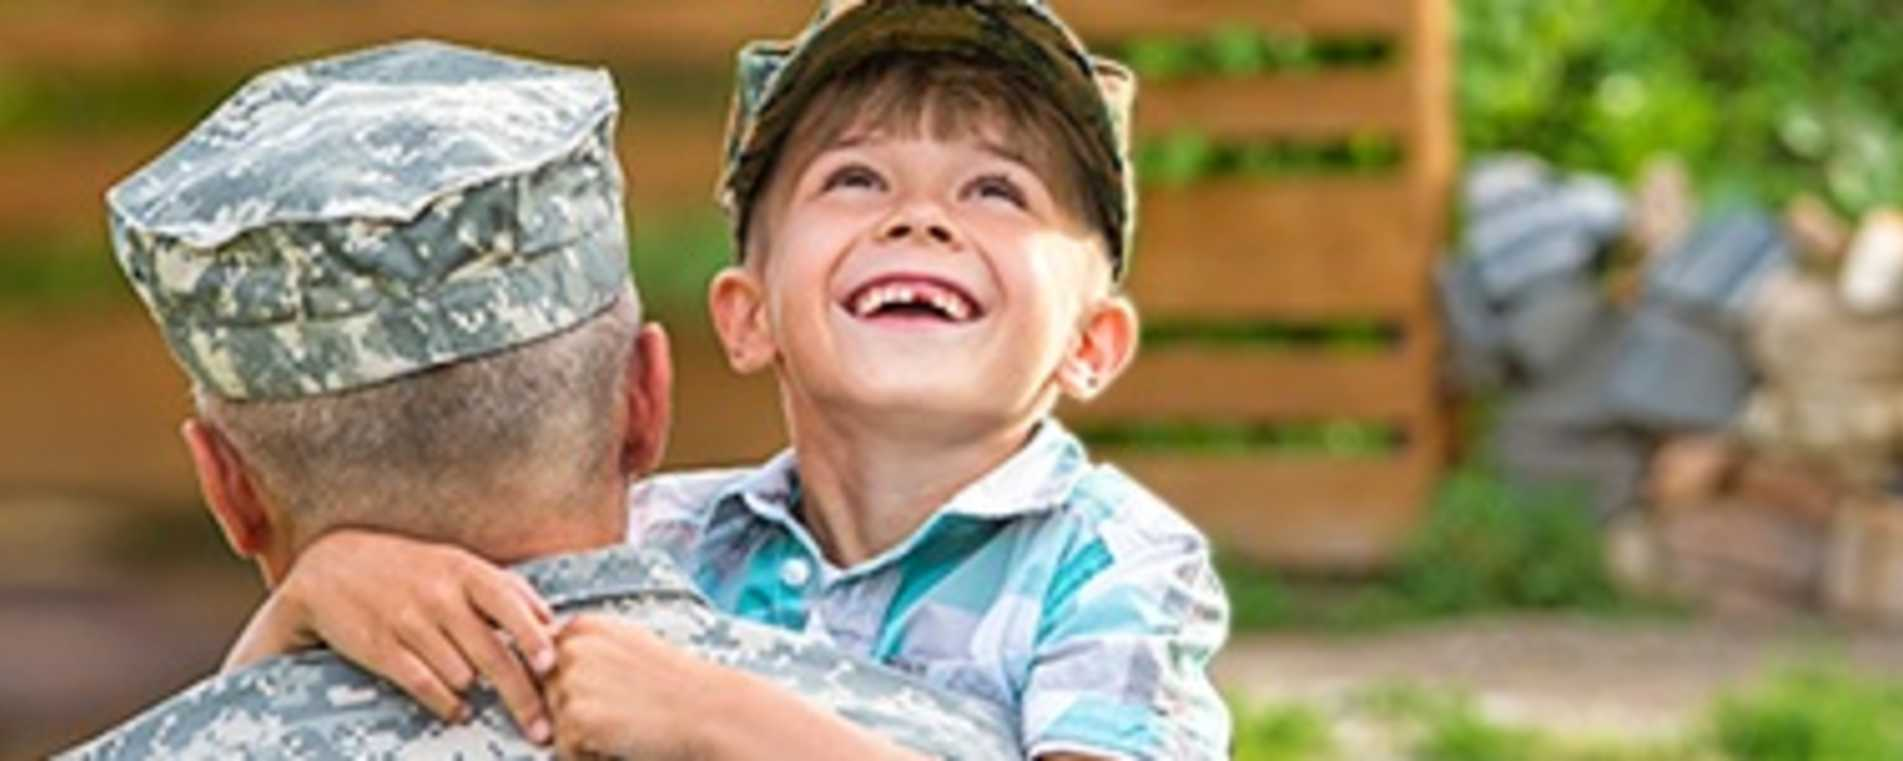 SpringHill Suites Government & Military Rates